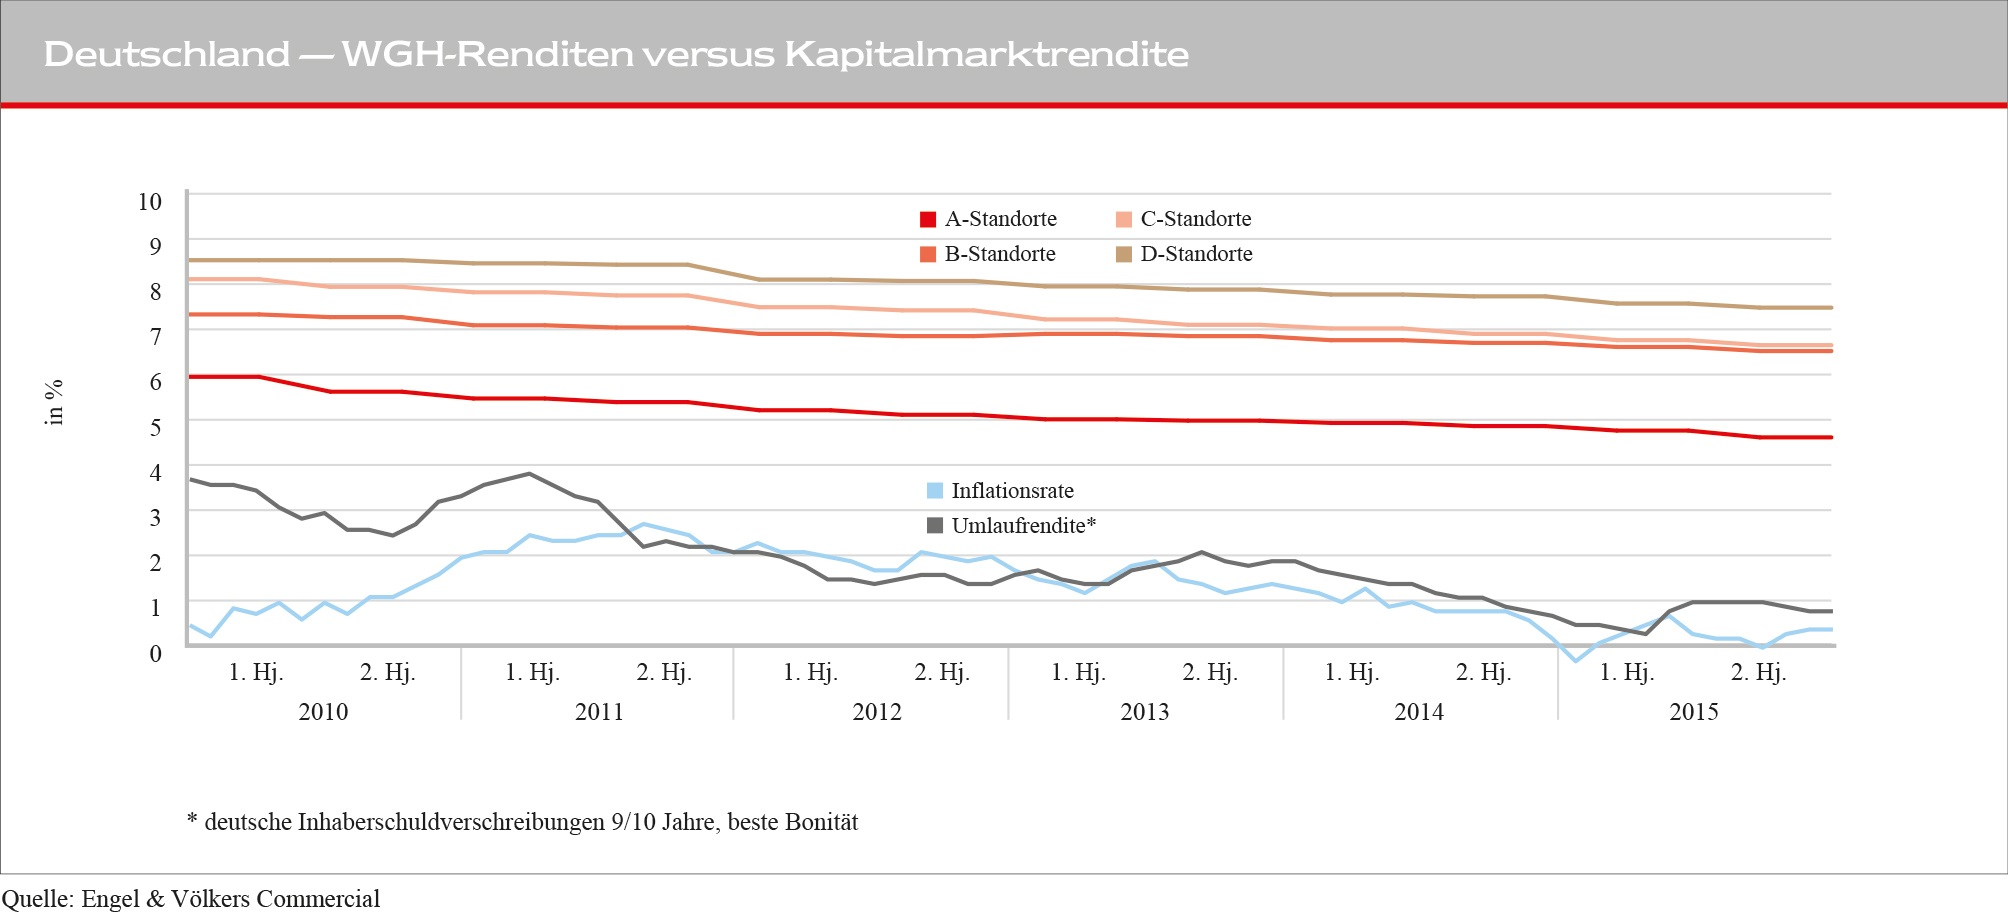 02_Rendite_vs_Kapitalmarktrendite